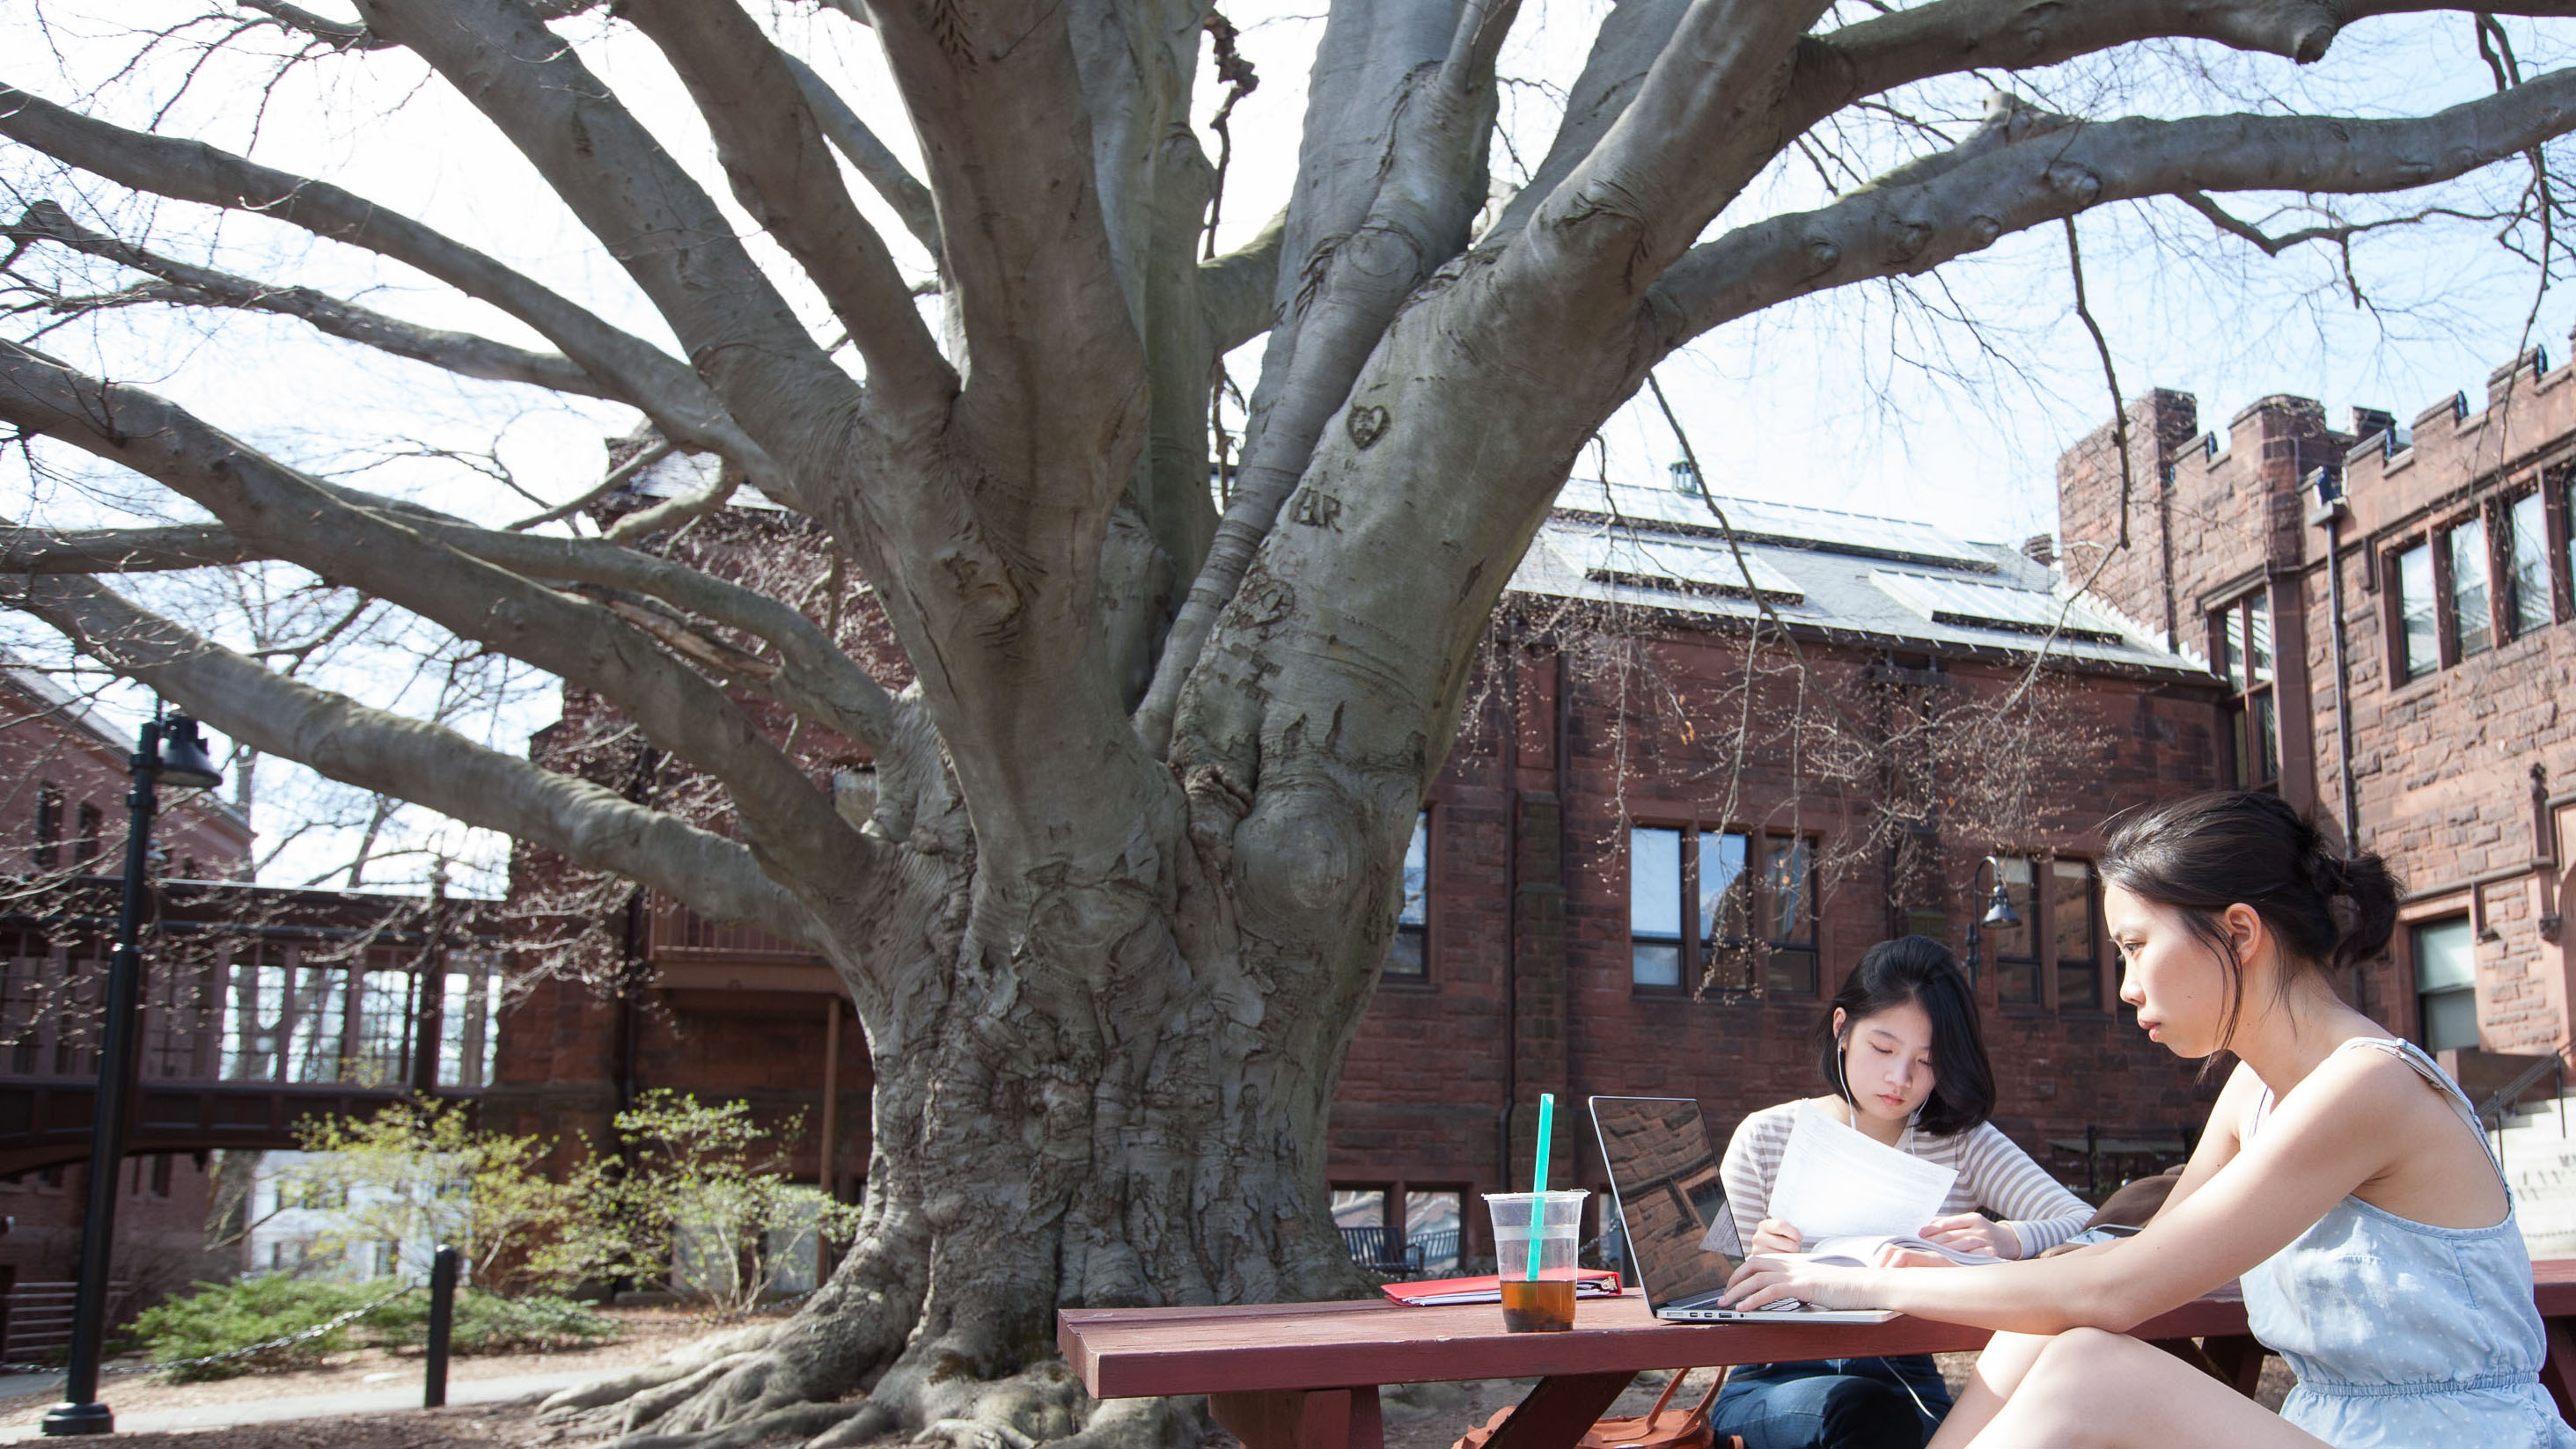 Students at work by Dwight Hall and the copper beech tree